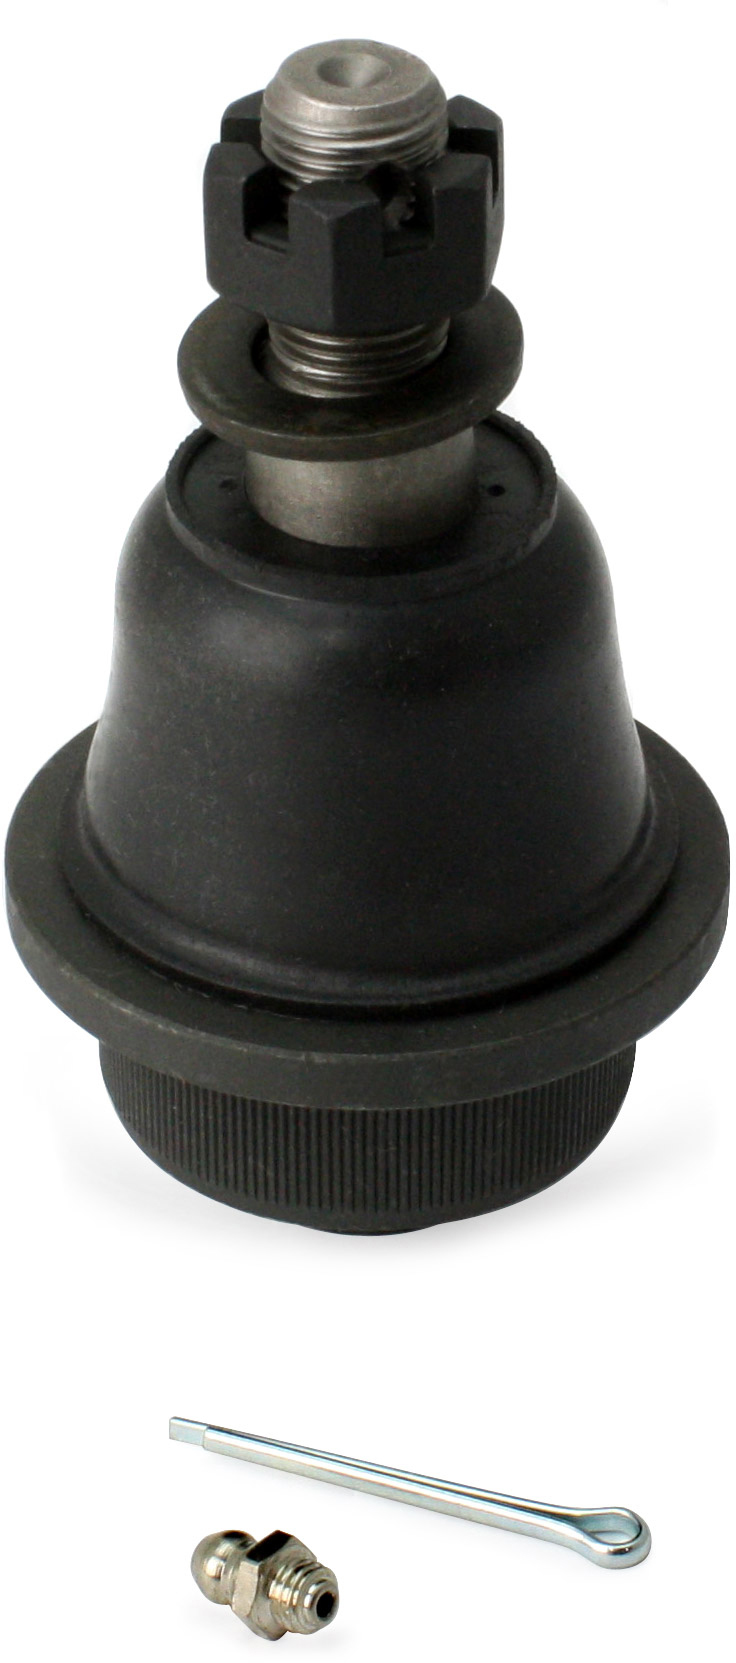 PF K6693 Ball Joint Lower 99-04 GM 1500 4WD Crew Cab 05-07 GM 1500 4WD HD Crew Cab 101-10076